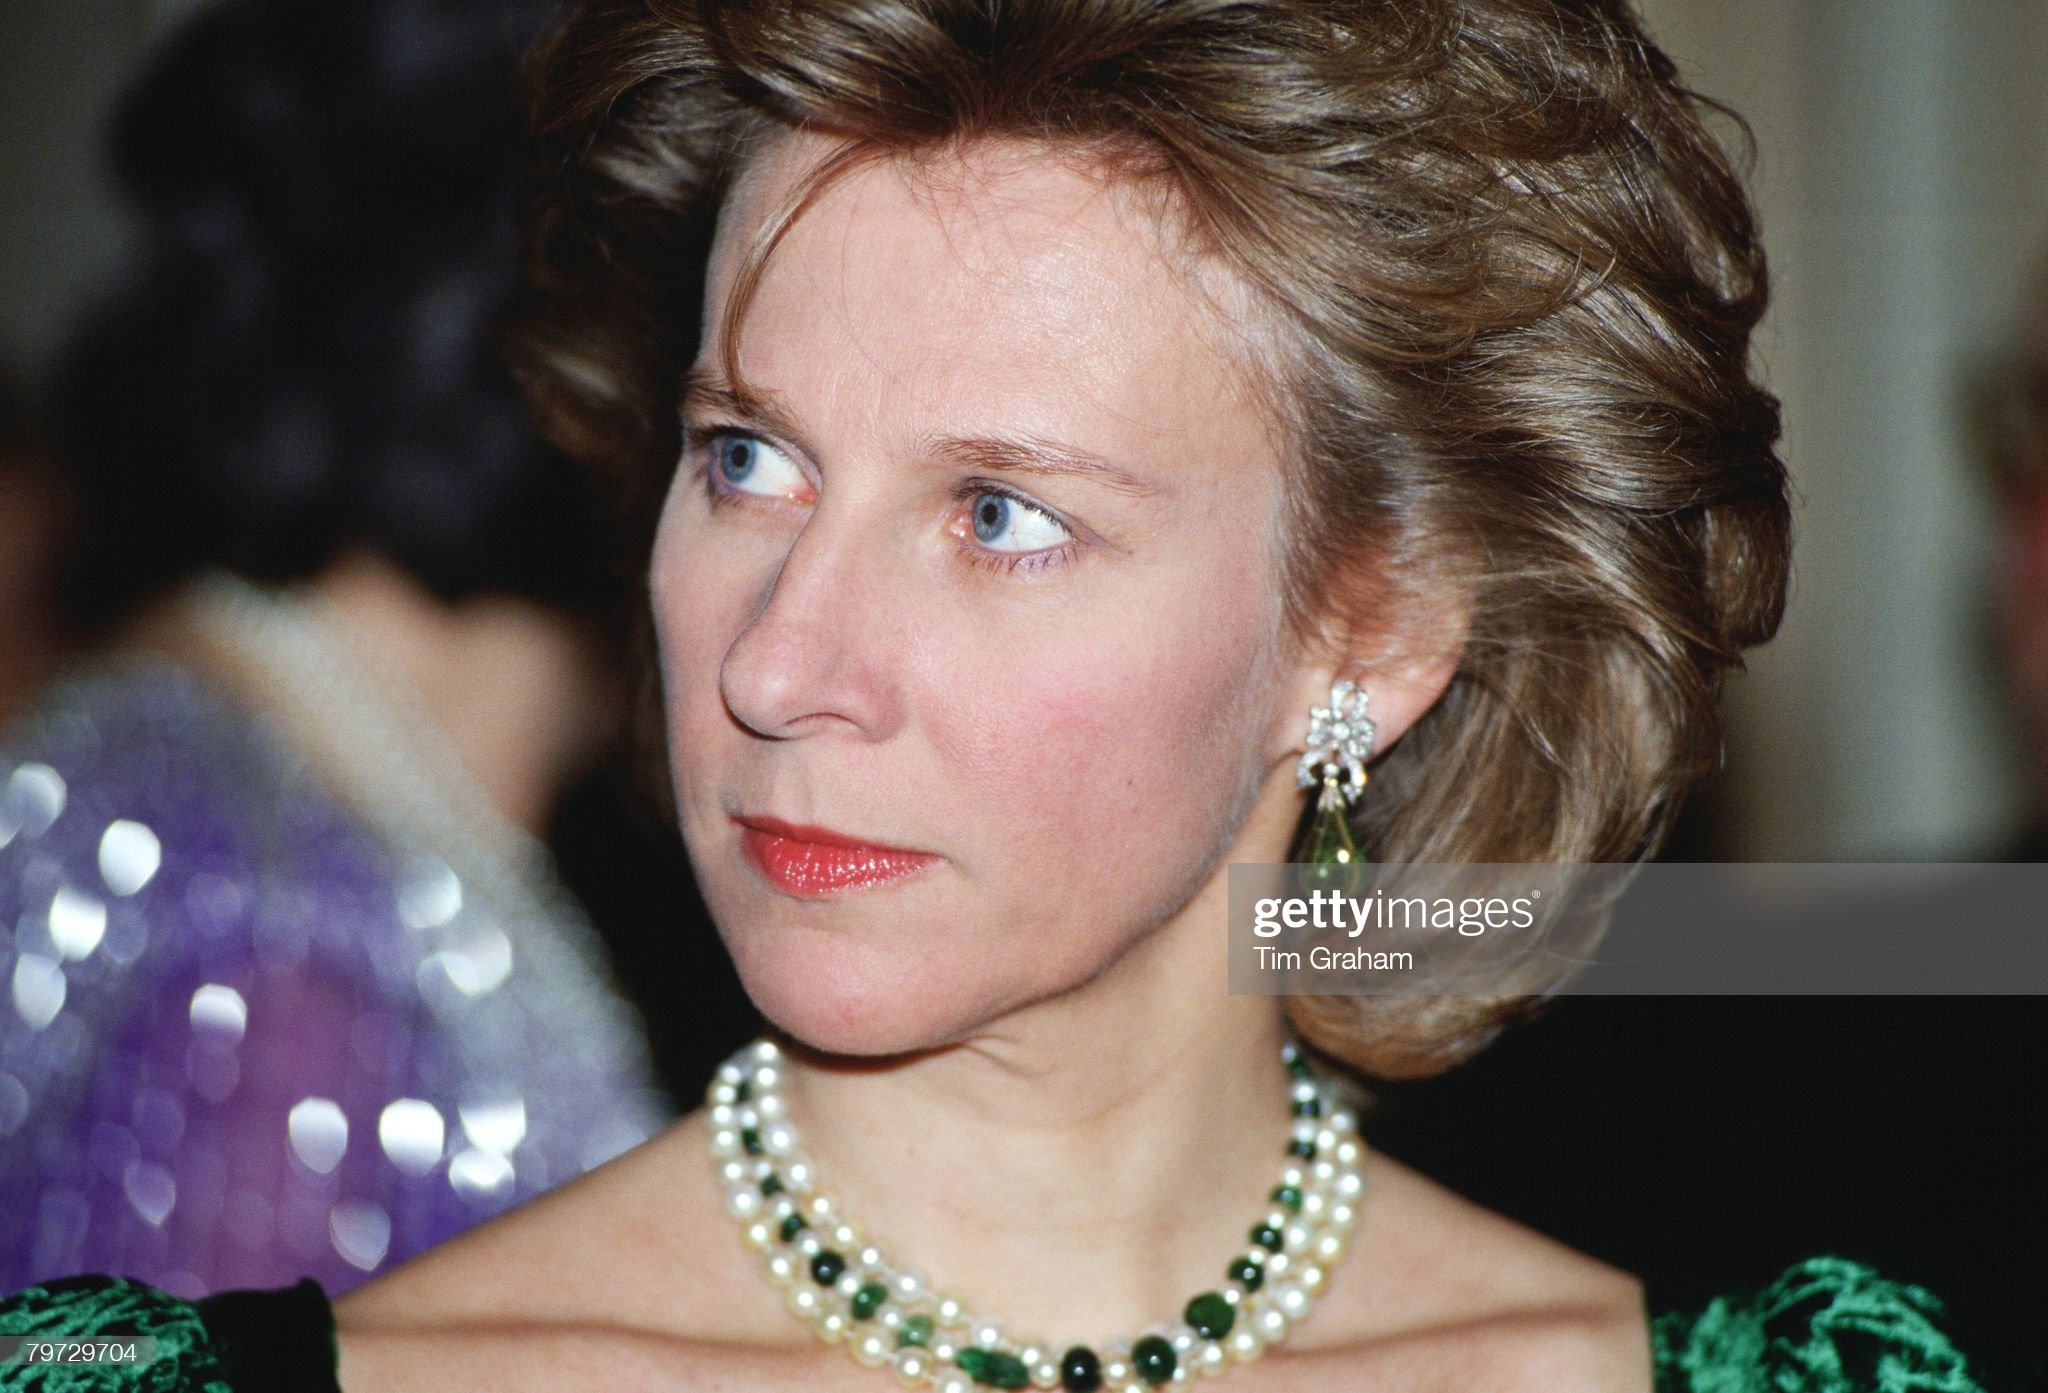 The Duchess of Gloucester attending a banquet at the Hilton : News Photo